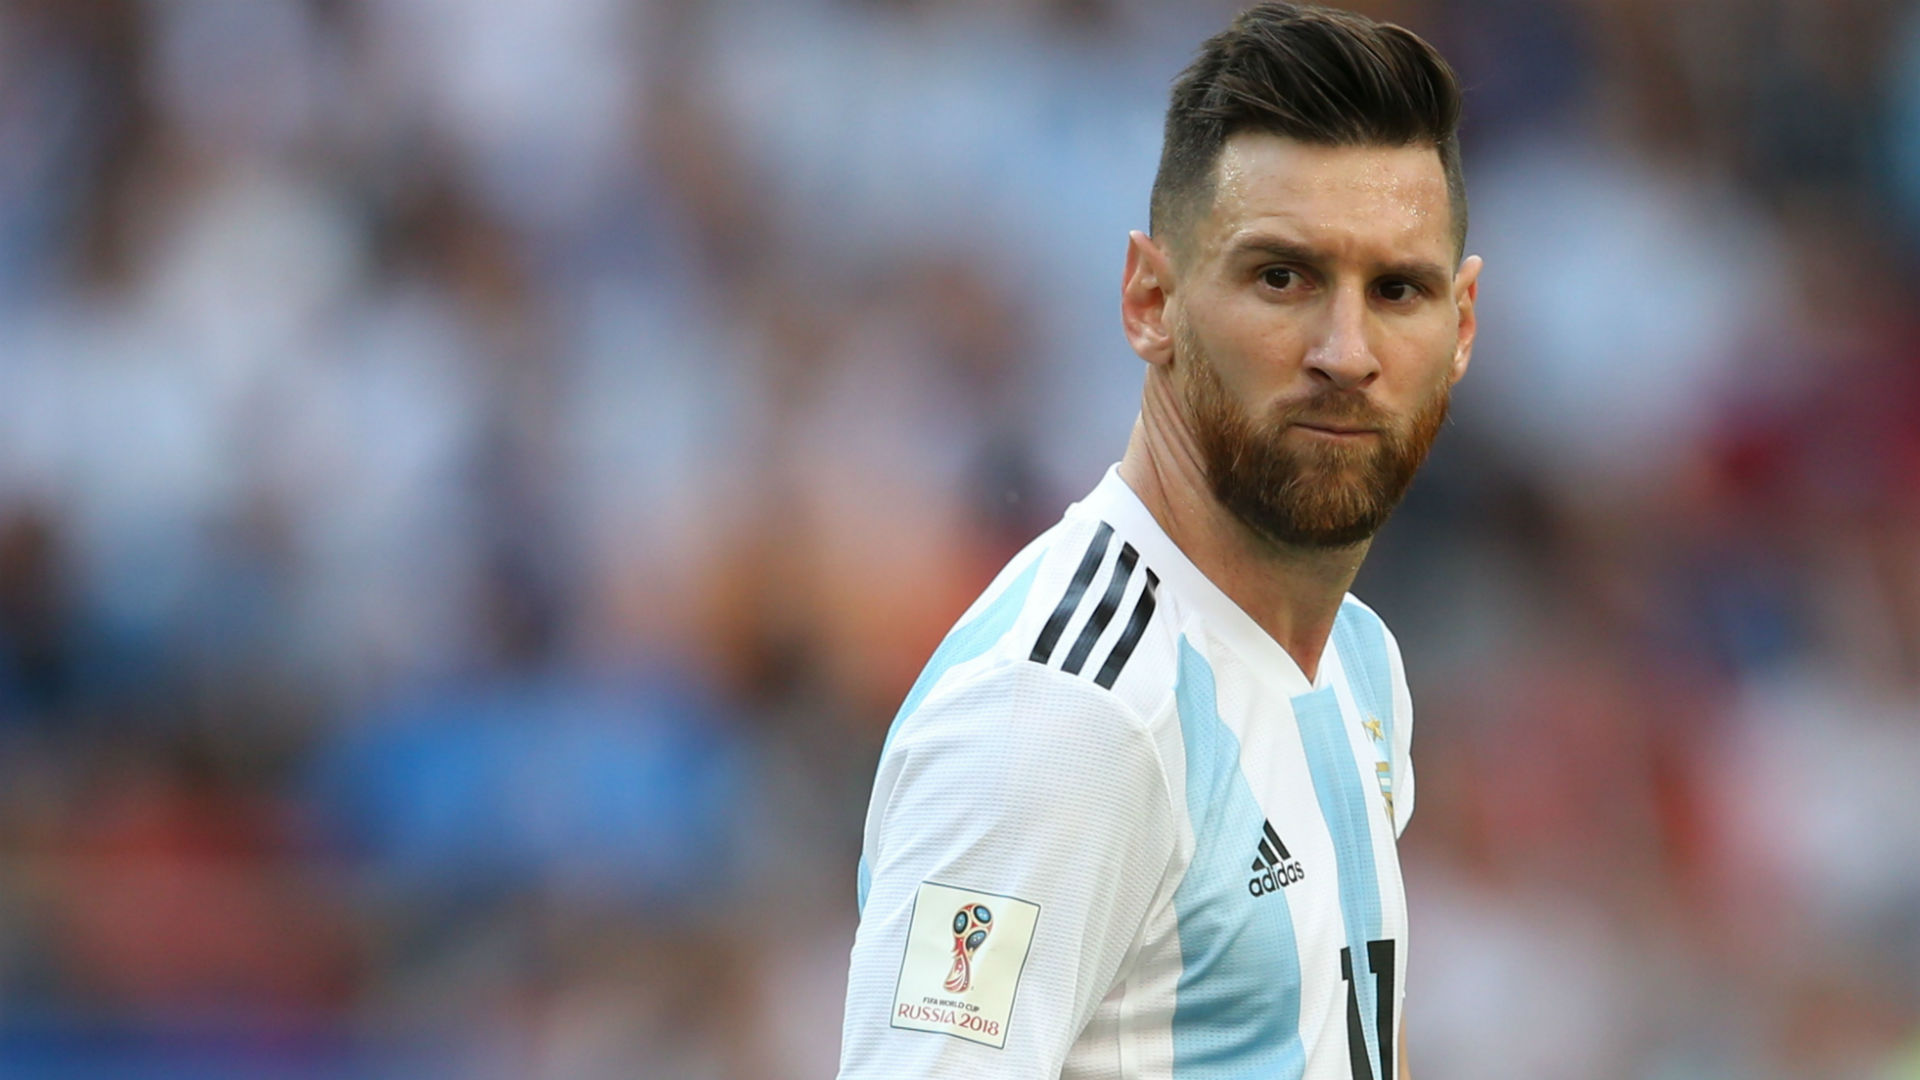 Football will be unfair if Messi doesn't win a World Cup - Ustari